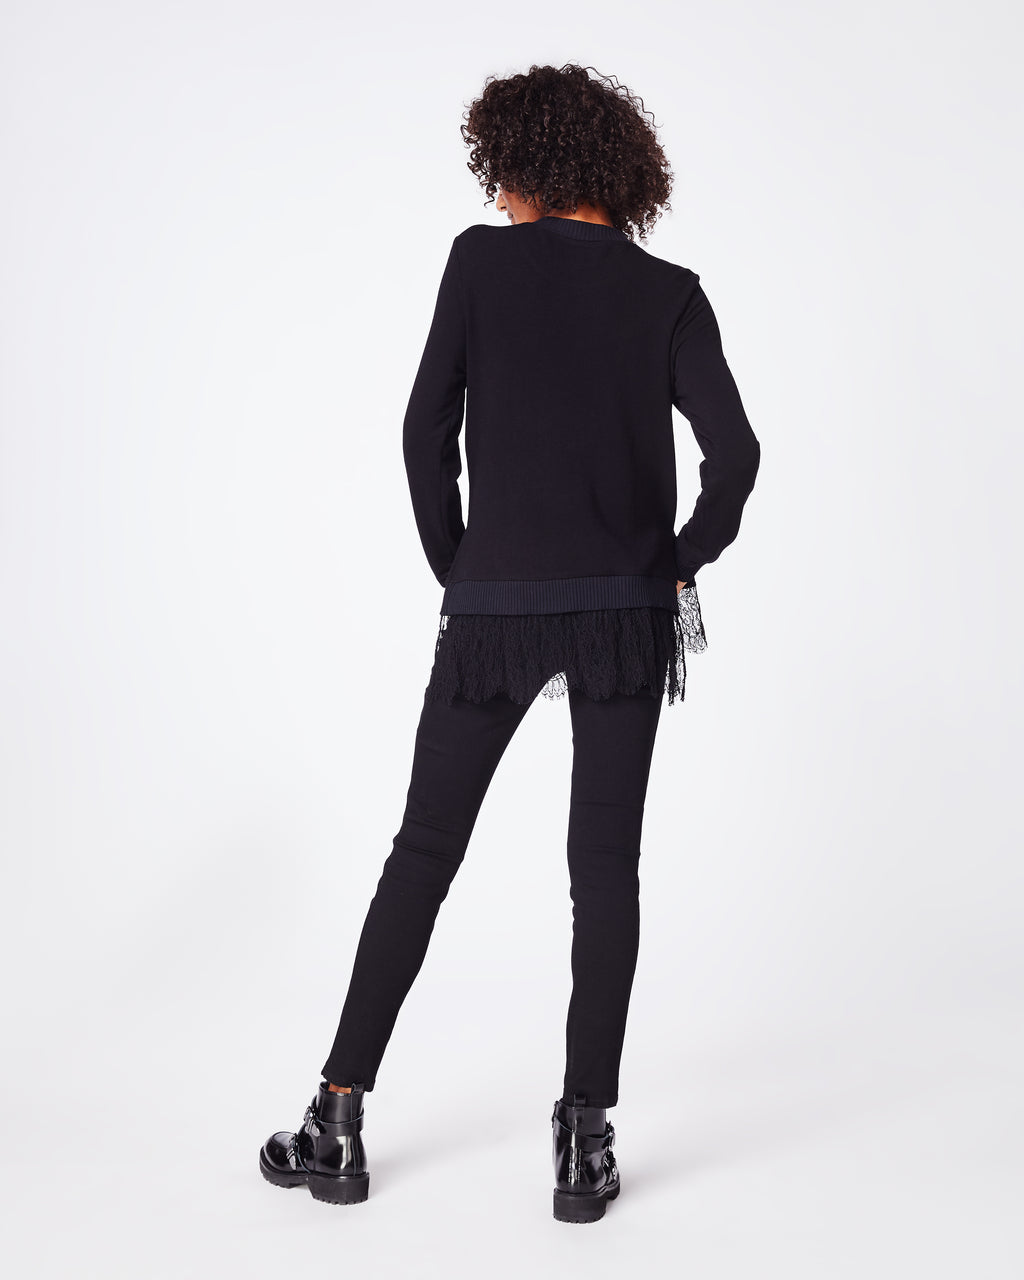 BK10266 - EMBELLISHED EAGLE SWEATSHIRT - tops - knitwear - This cotton sweater features a ruffled hem and embellished eagle. Unlined.